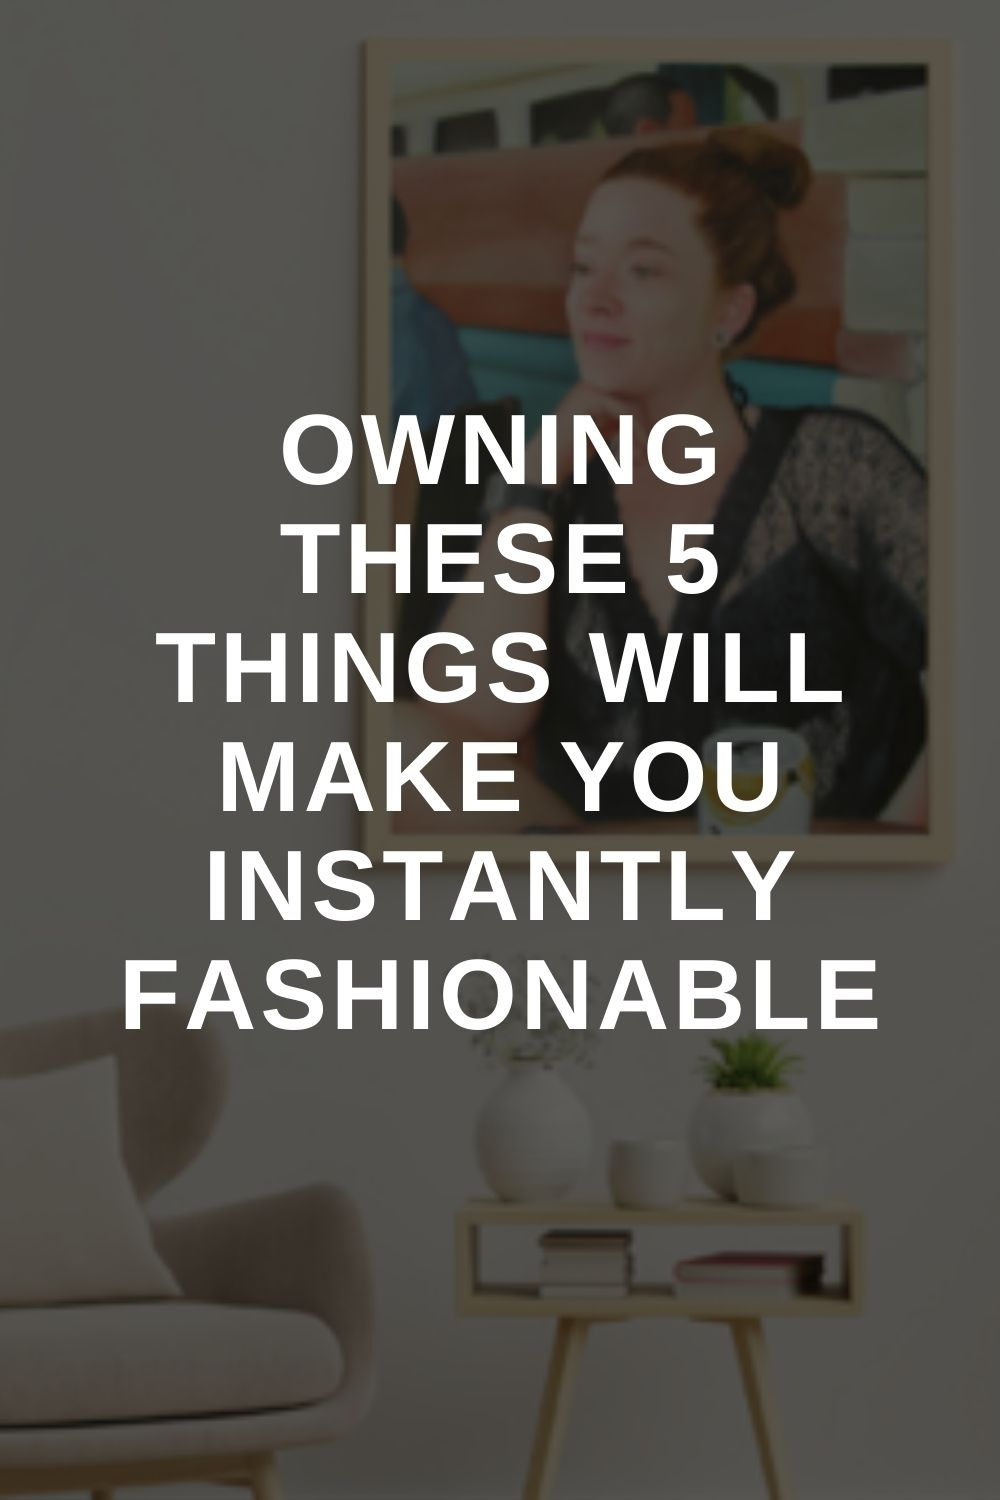 Owning These 5 Things Will Make You Instantly Fashionable